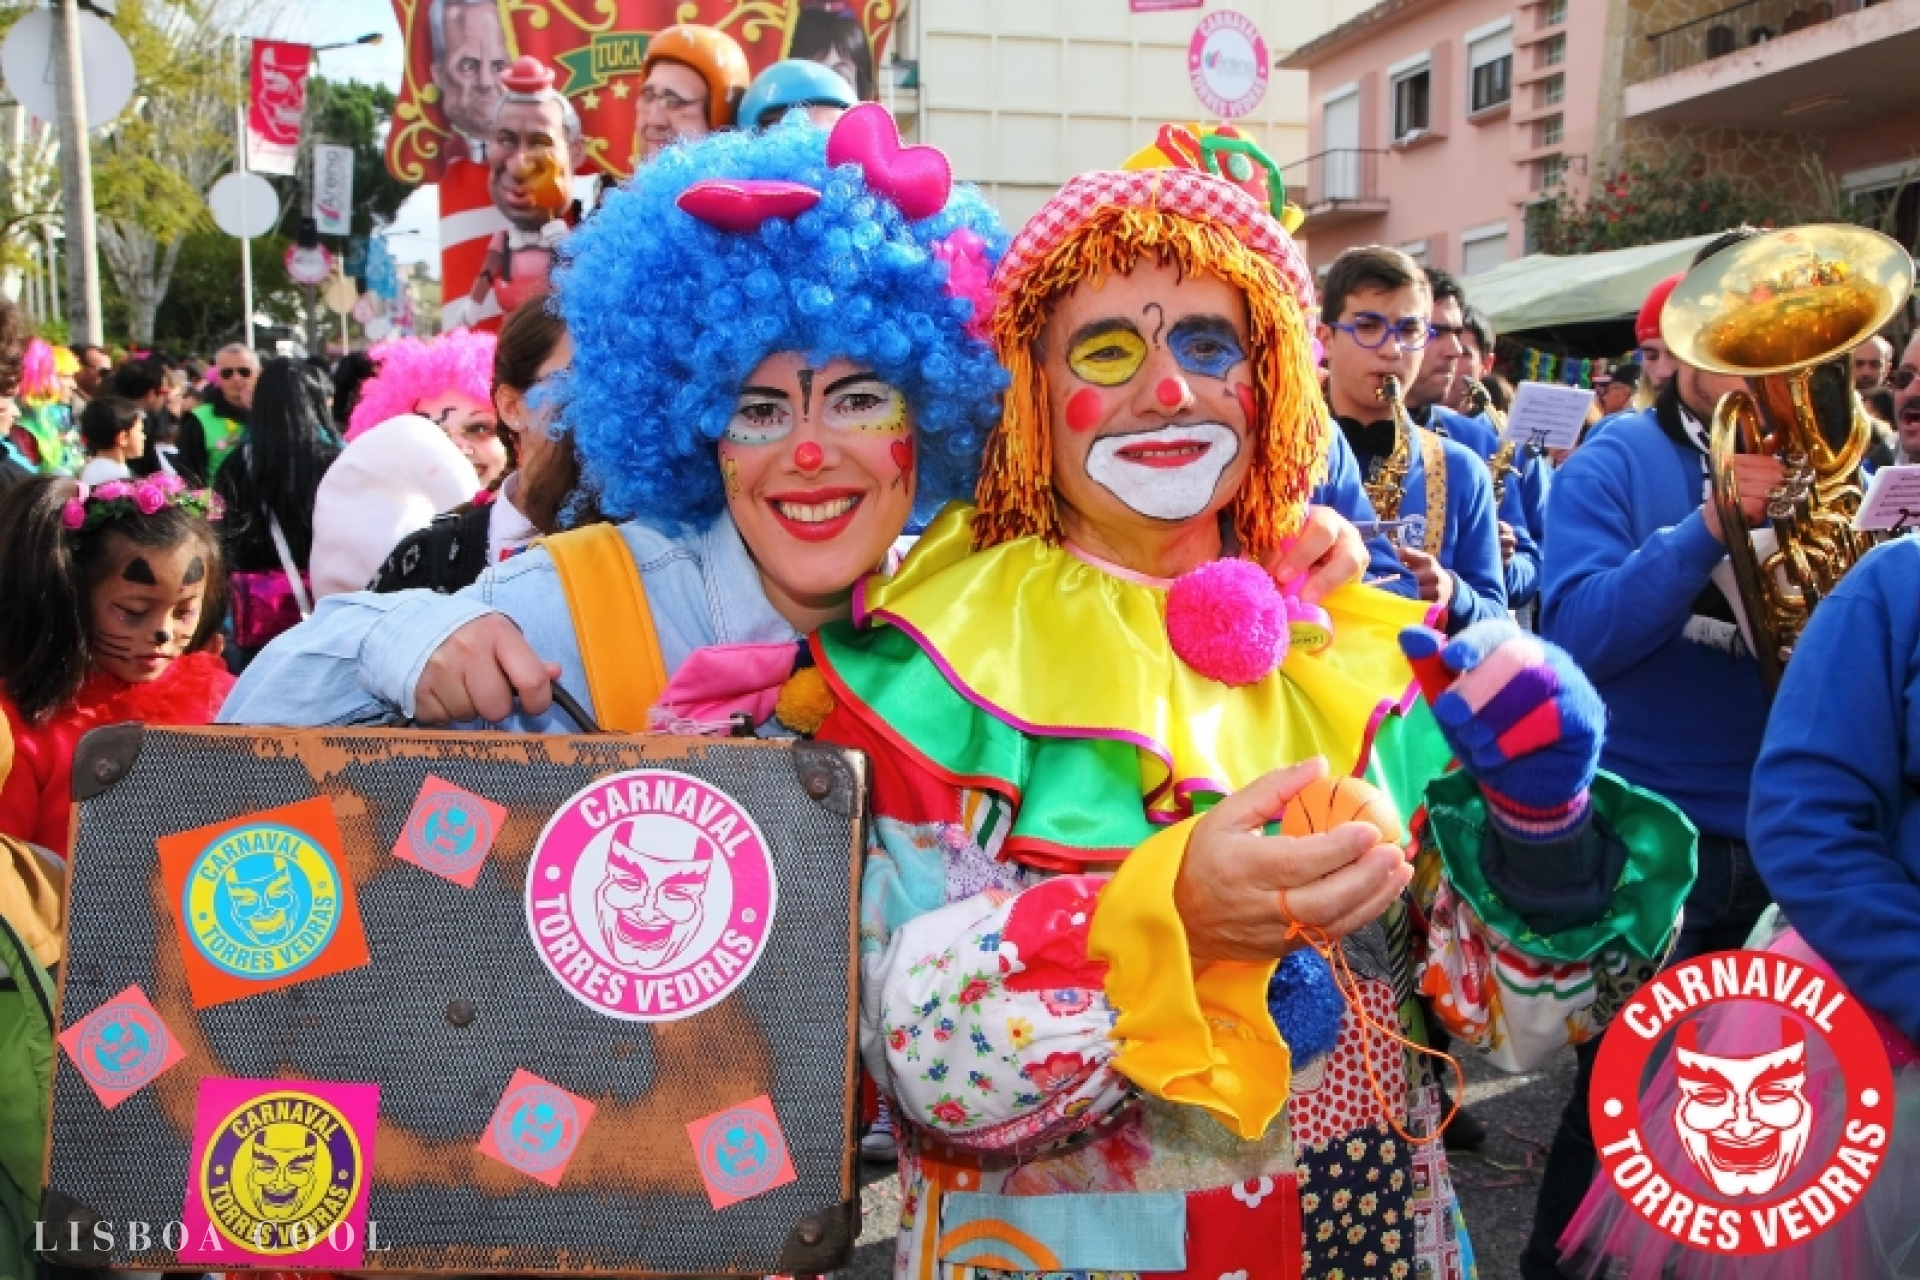 LisboaCool_Blog_NEARBY   TOUR GUIDE FOR CARNAVAL DE TORRES VEDRAS